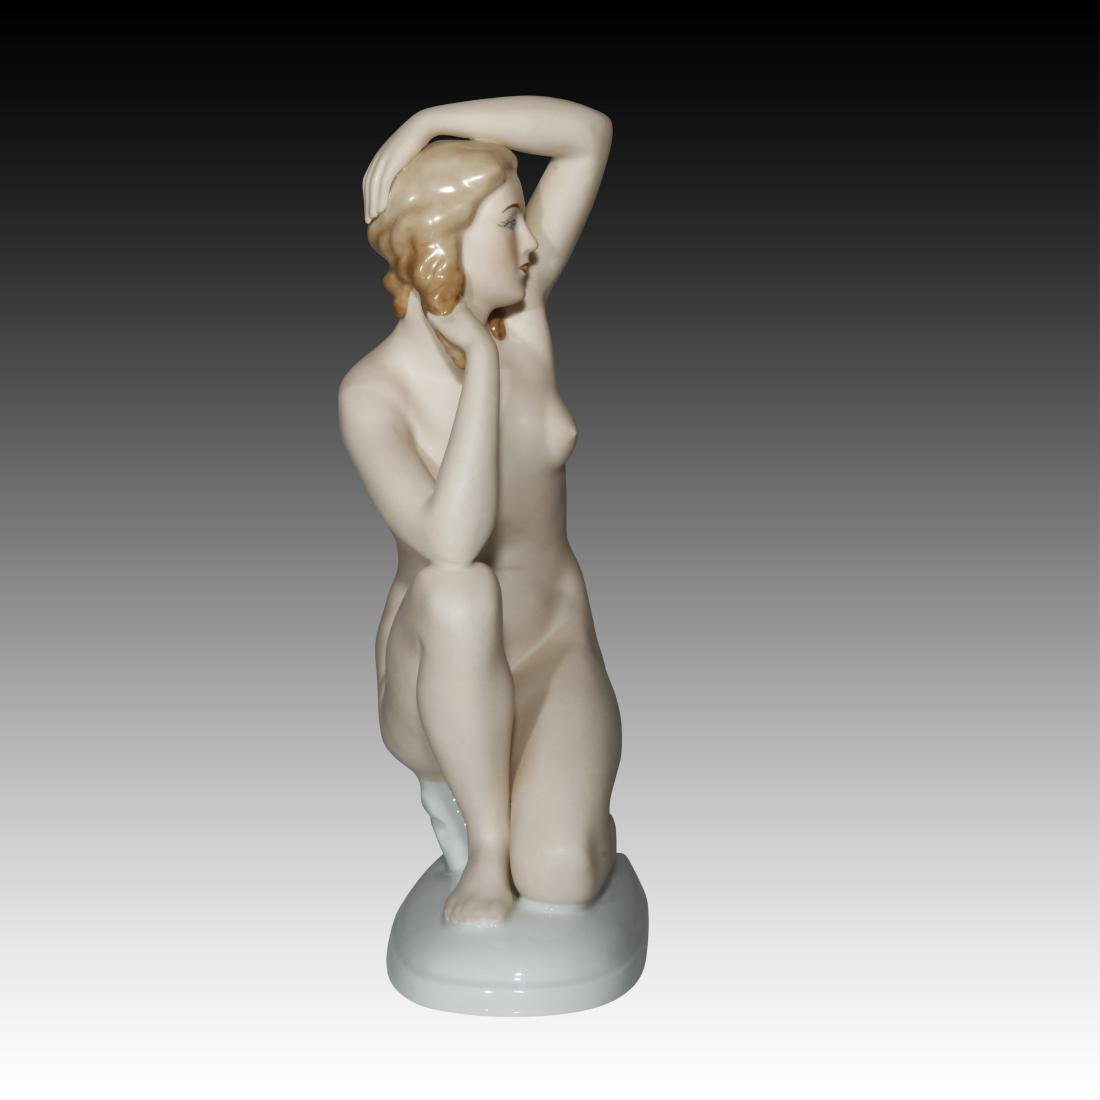 Gerold Porzellan Nude Woman on one knee Figurine - 2